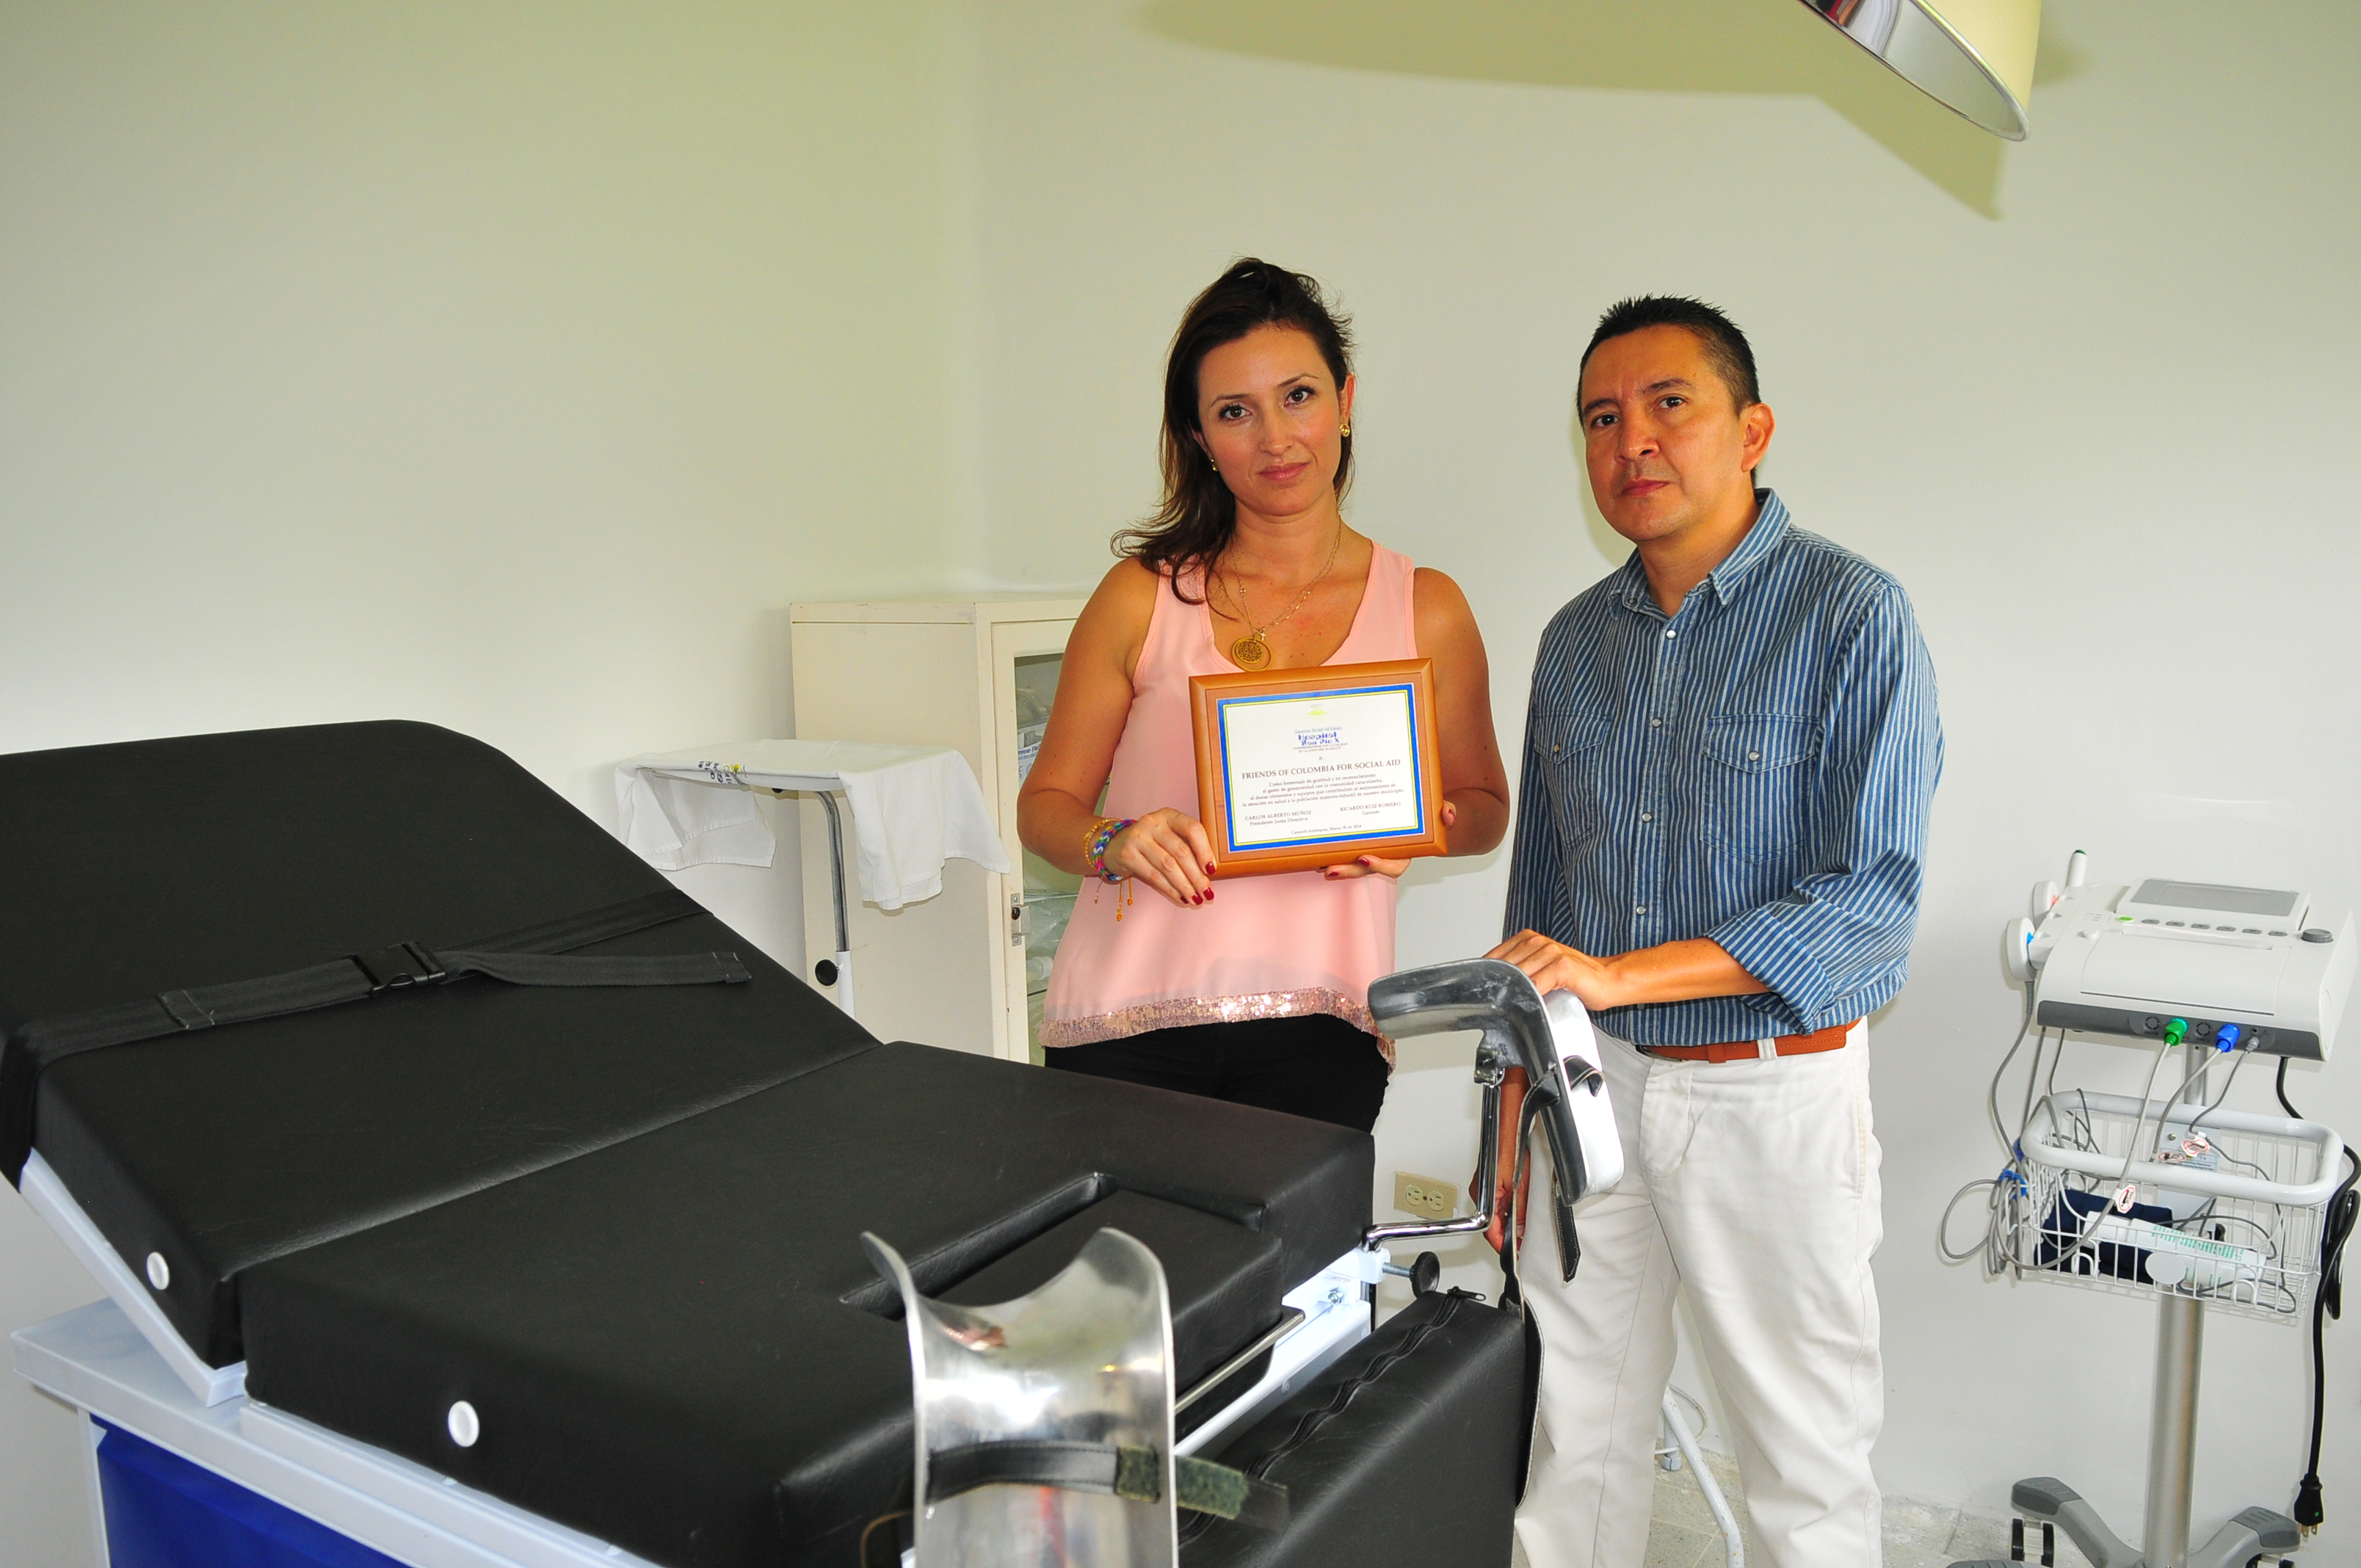 With the help of funds raised Felipe Posada, FOCSA was able to donate a Closed Incubator, Vital Signs Monitor and Phototherapy Lamp to this deserving hospital.